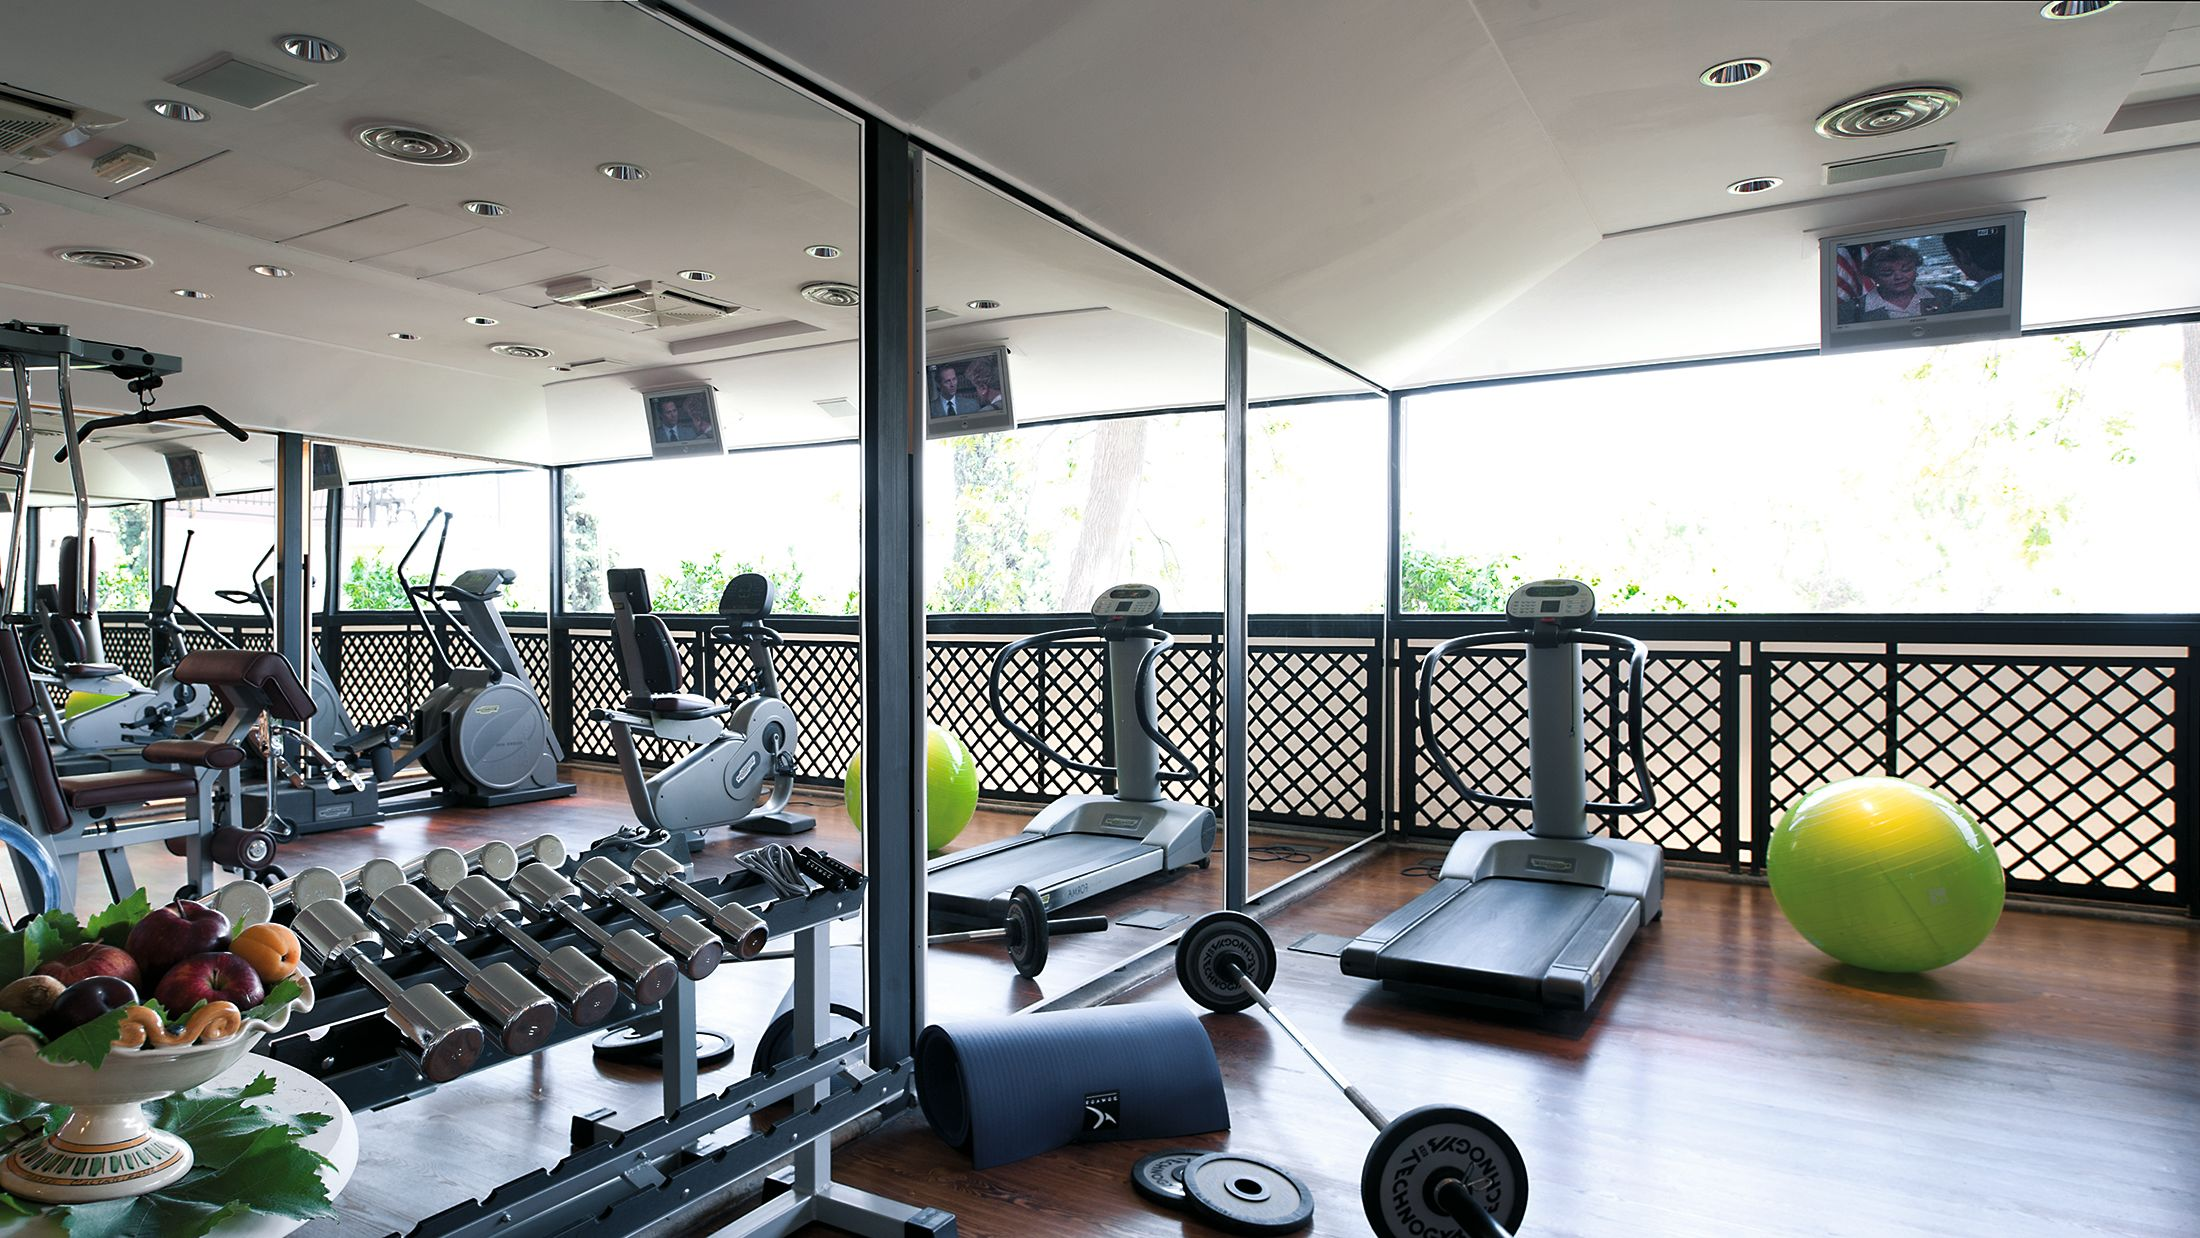 108586-Fitness-Room-001-Hybris